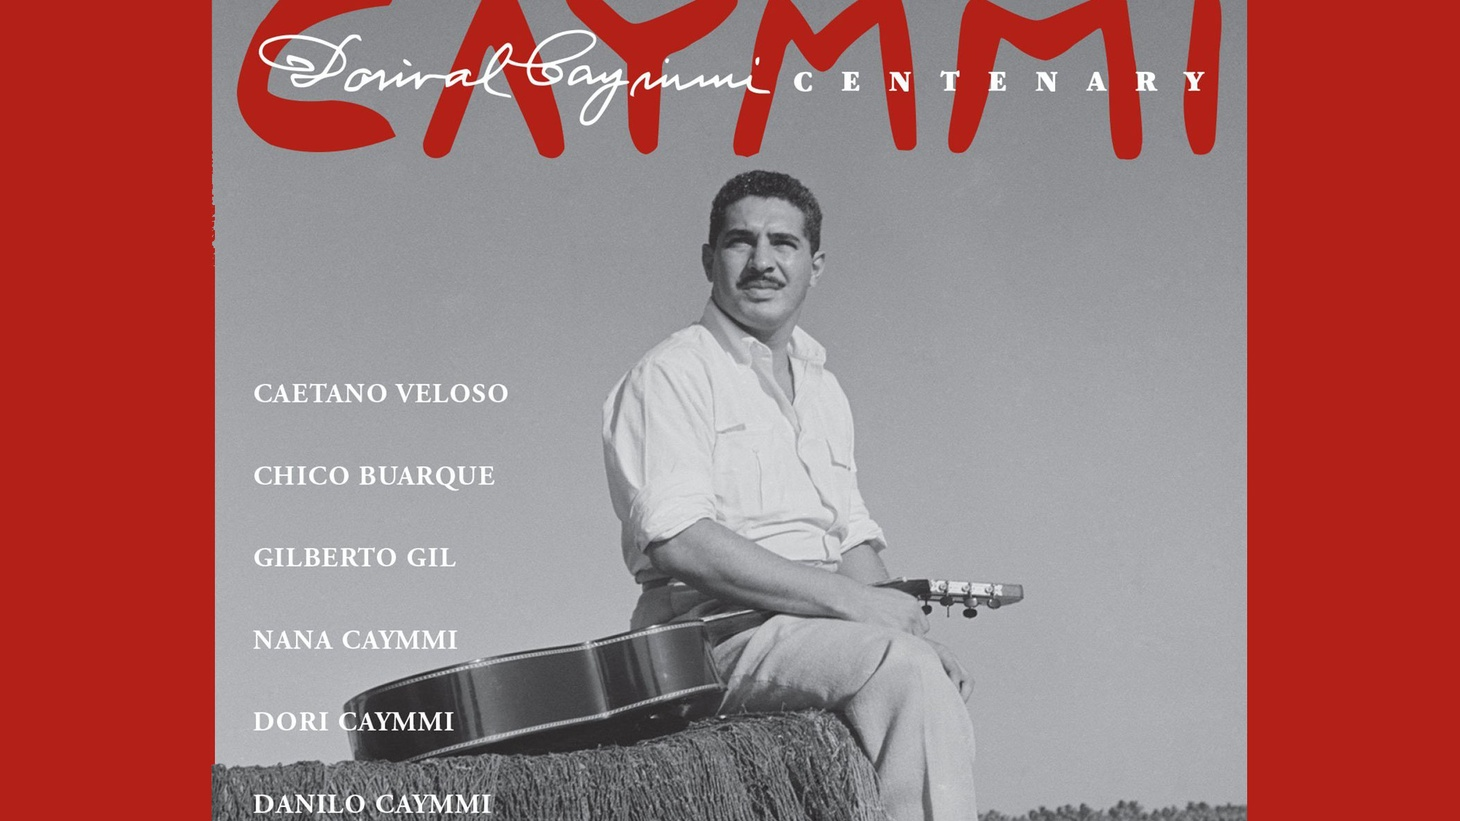 This week we celebrate the music legacy of Brazilian maestro Dorival Caymmi with a great new CD.